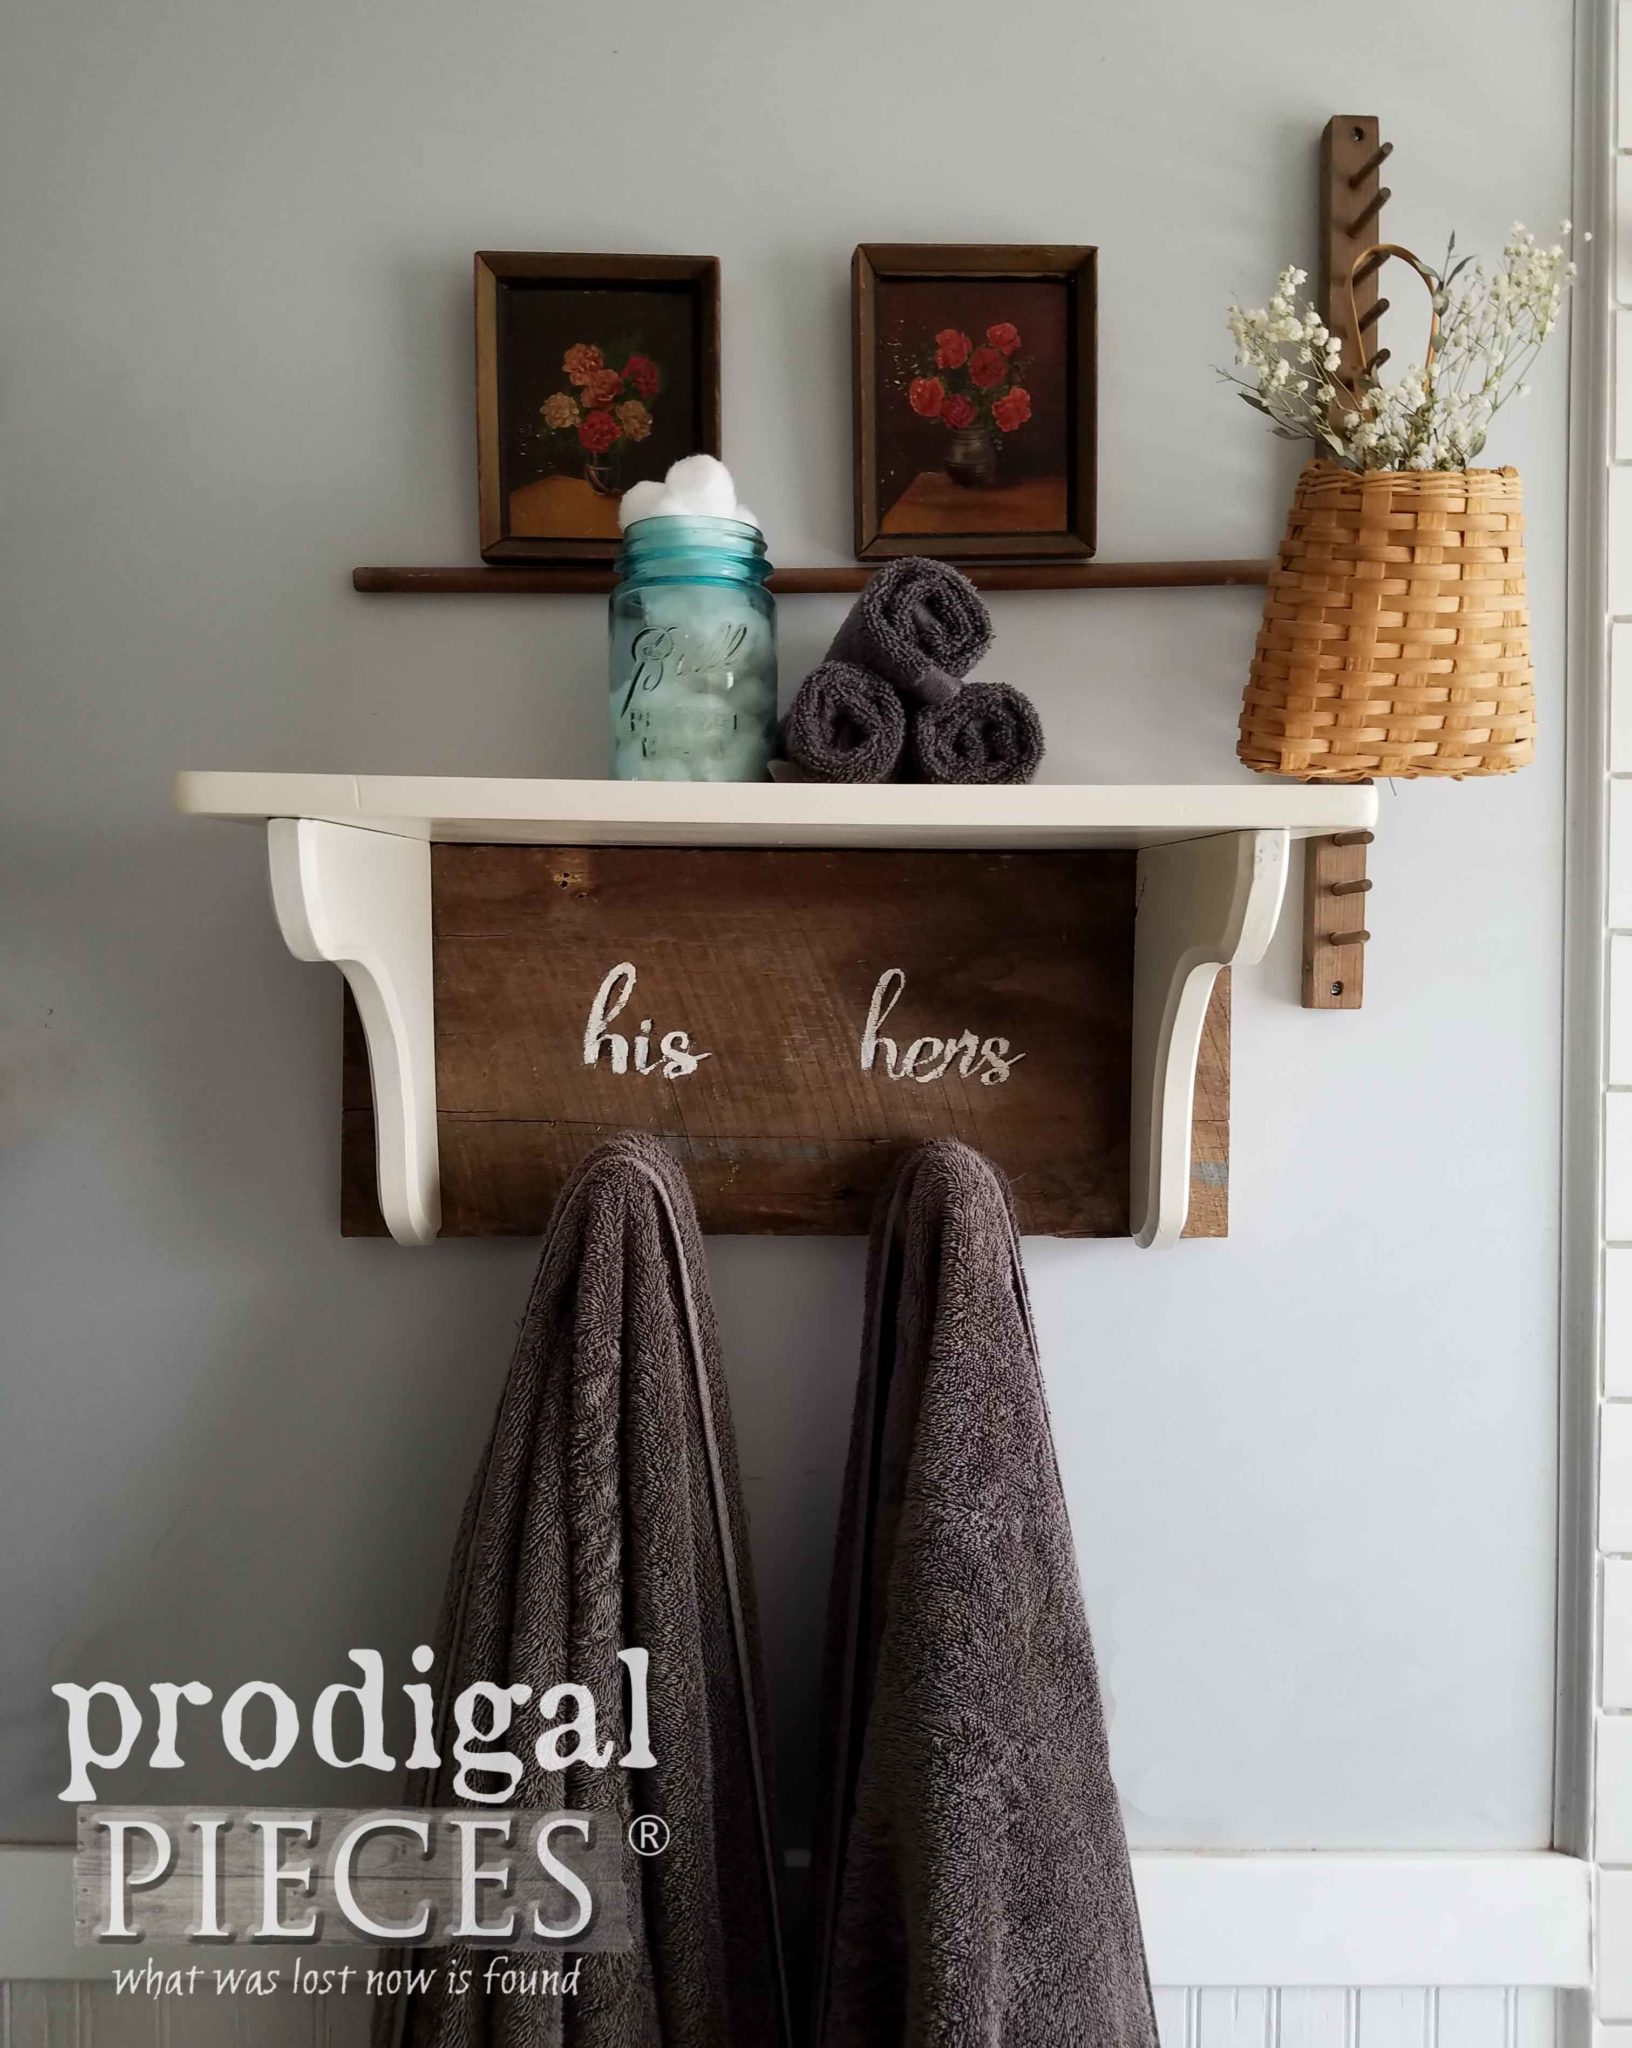 Reclaimed Wood Shelf with His and Hers Typography on Barn Wood by Larissa & Son of Prodigal Pieces | prodigalpieces.com